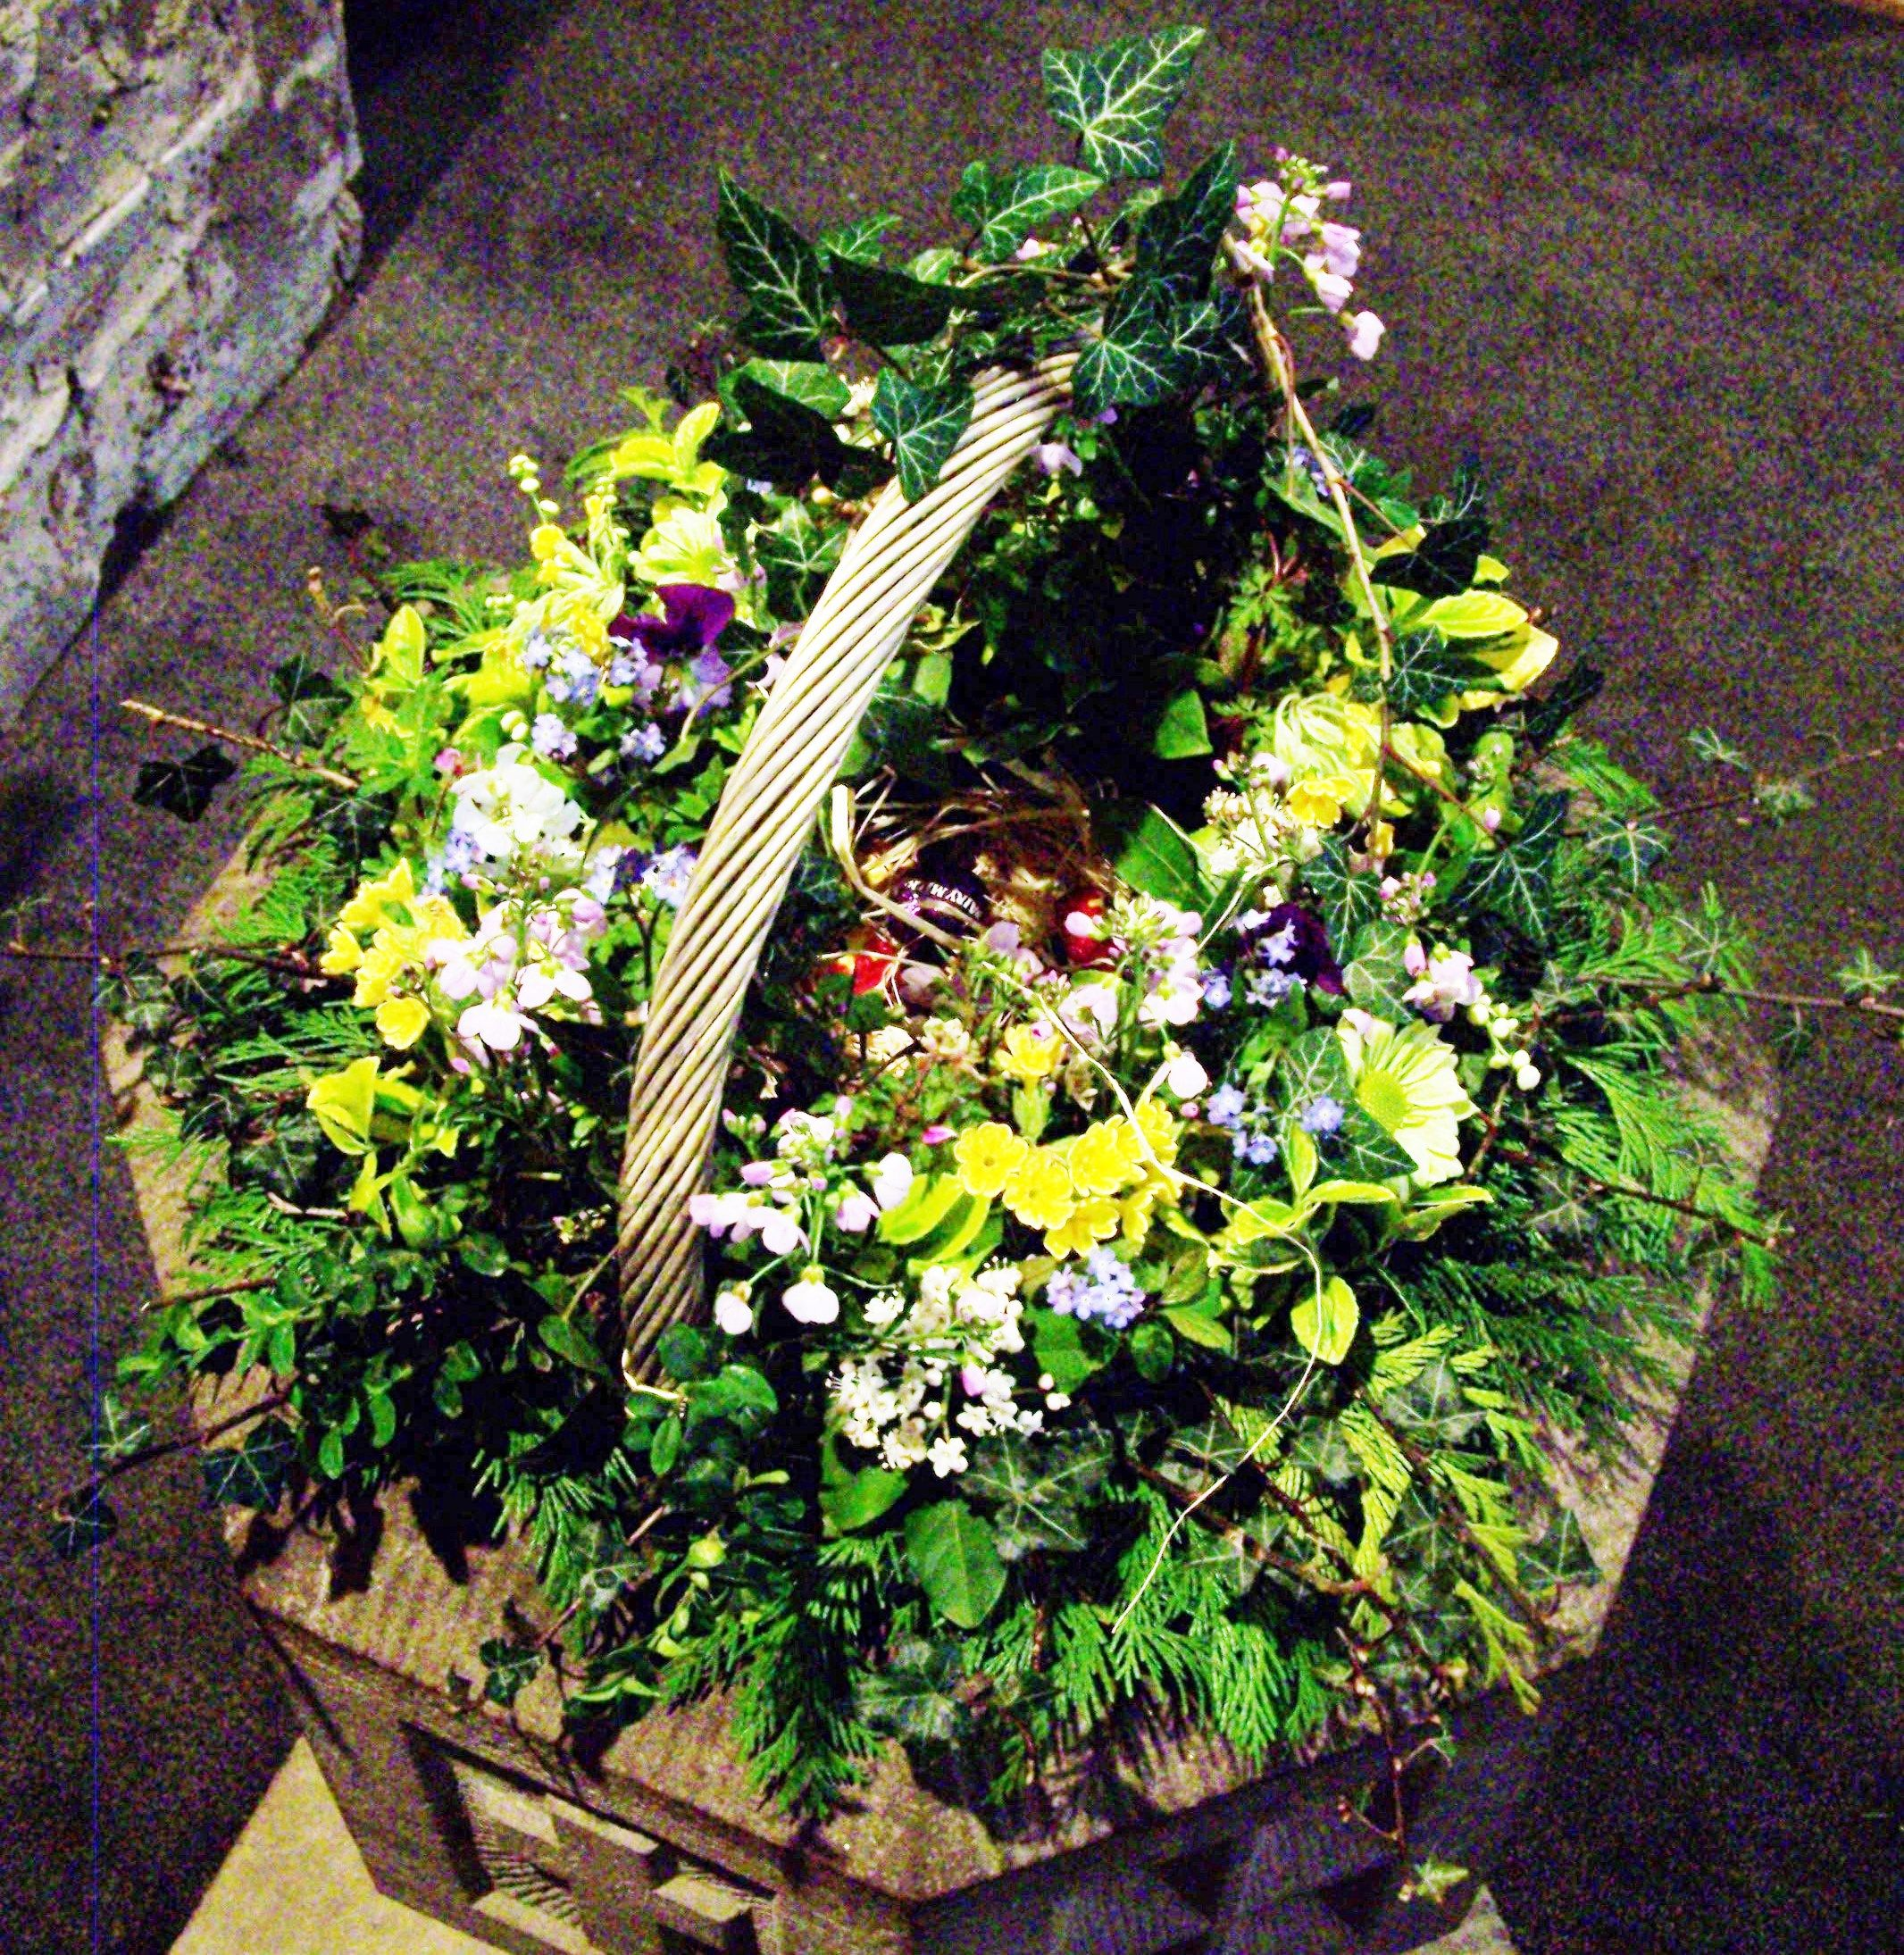 St Giles, Ludford, Easter 2012 - in the font: a nest of wildflowers containing Easter eggs for the children.